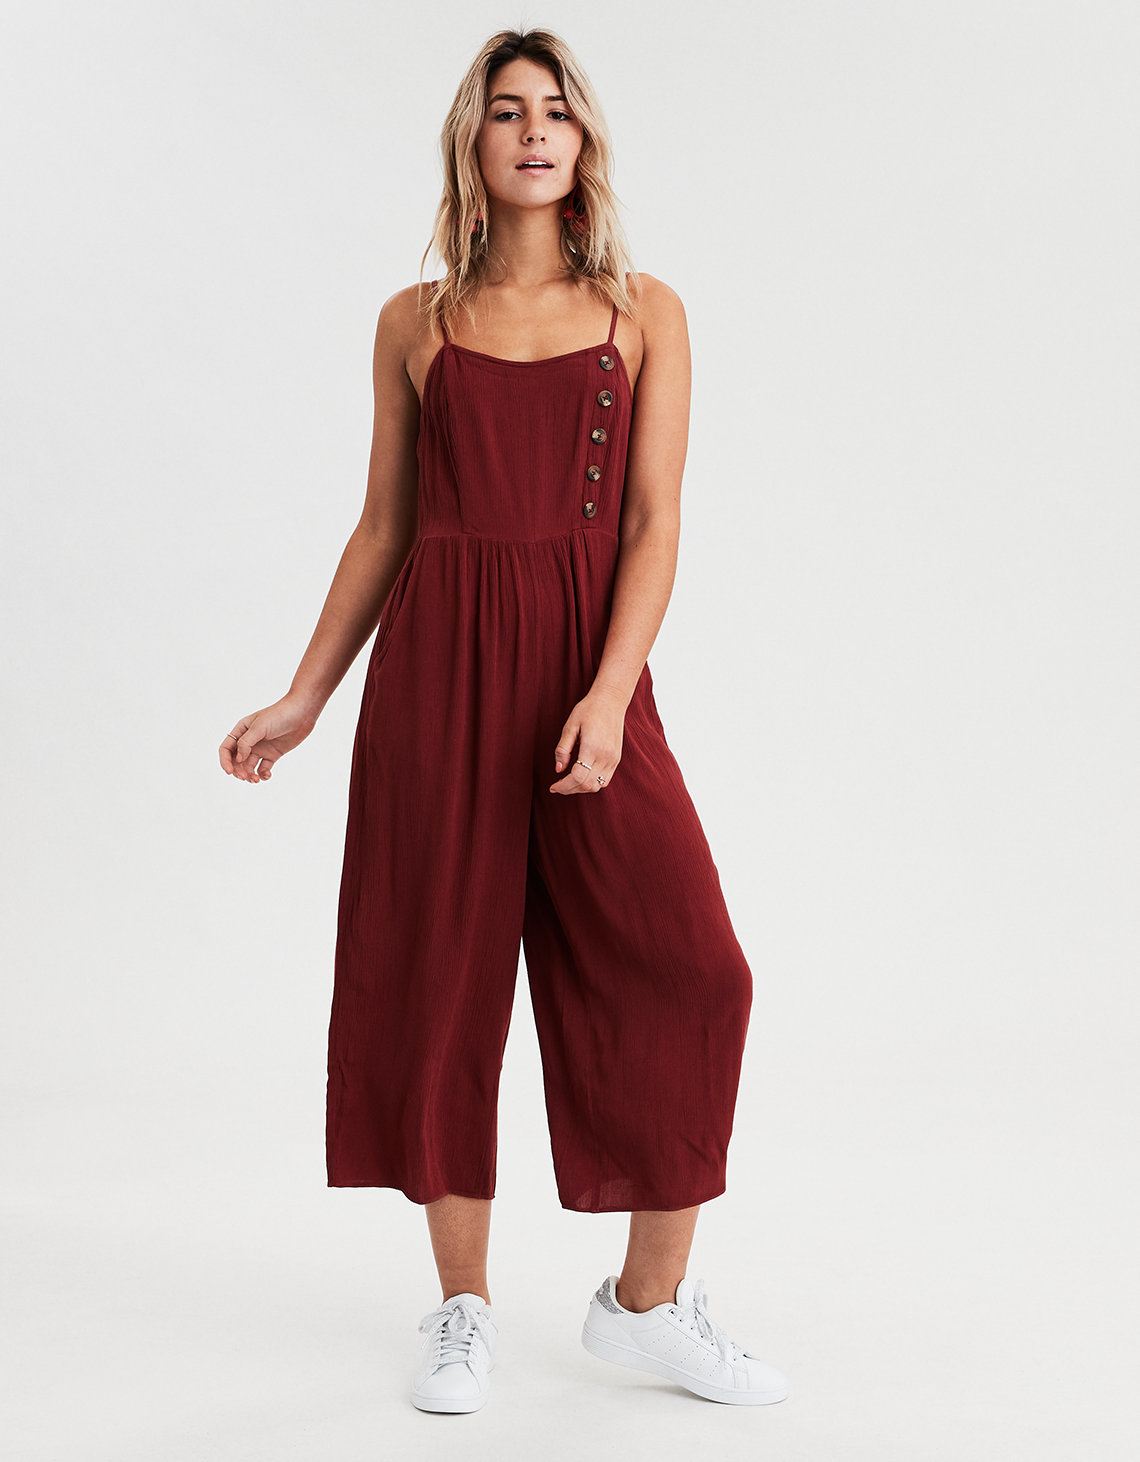 ac7d792f6e62 AE Striped Button Front Jumpsuit. Placeholder image. Product Image